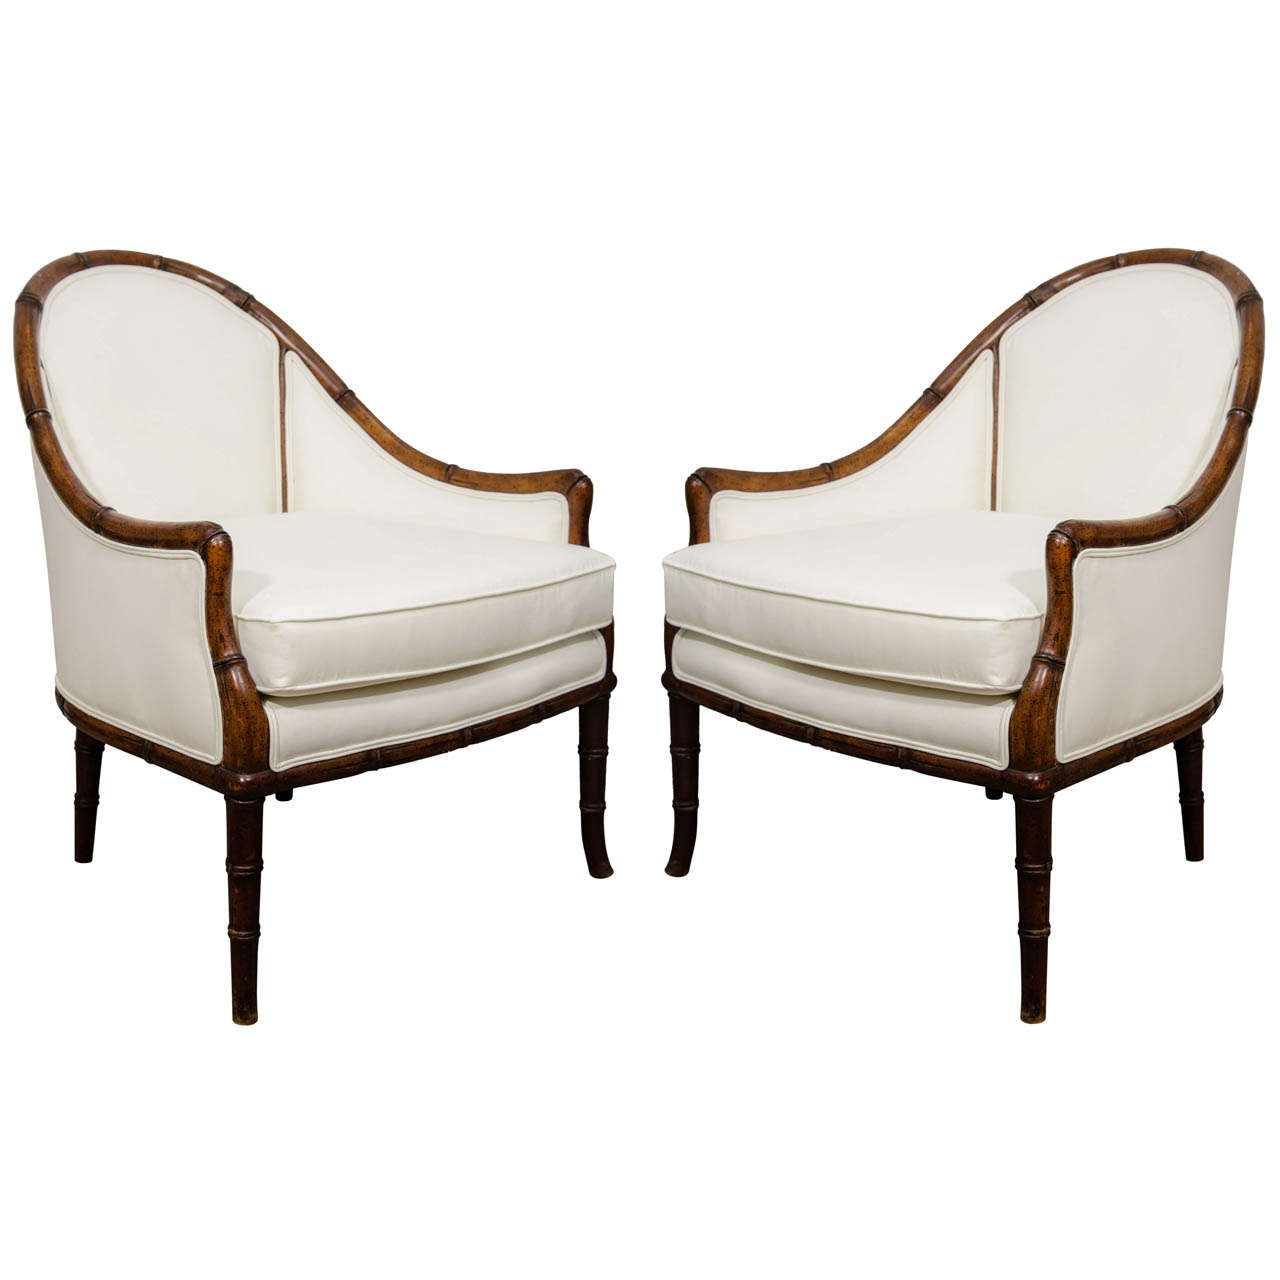 A Pair Of Vintage Faux Bamboo Arm Chairs At 1stdibs